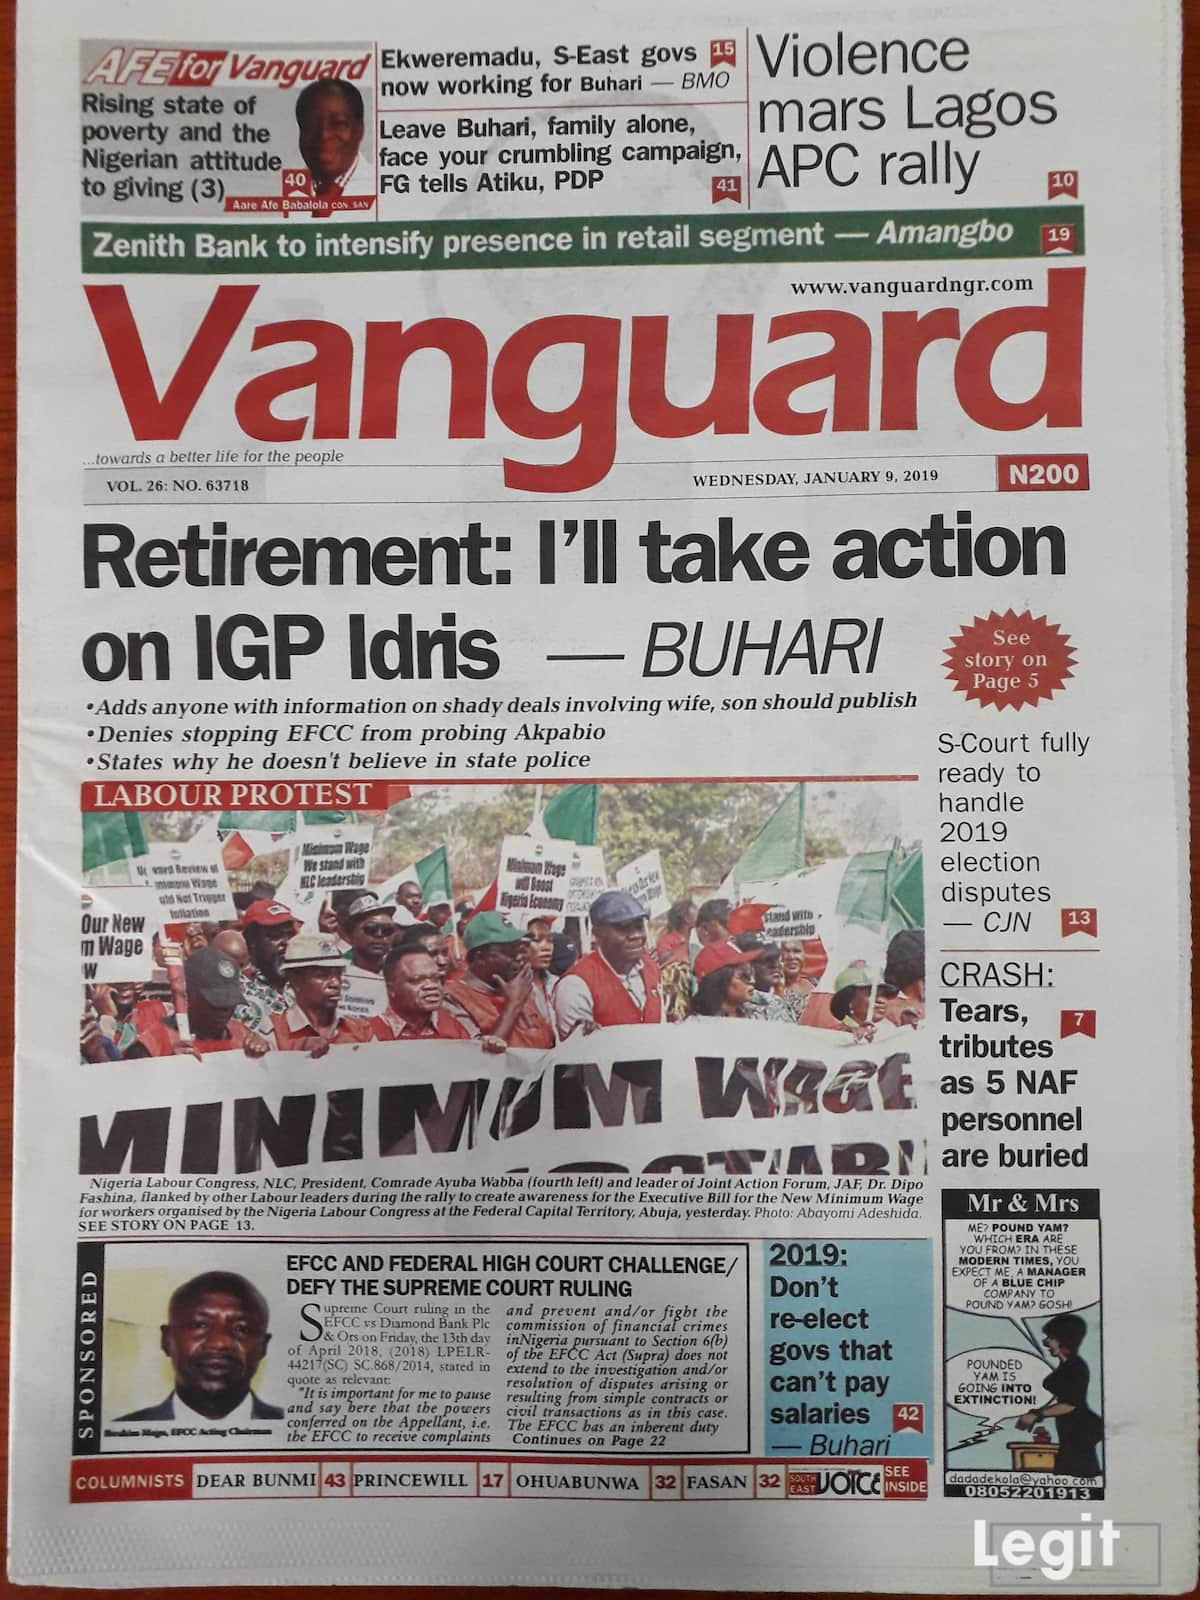 Vanguard newspaper for Wednesday, January 9. Credit: Legit.ng